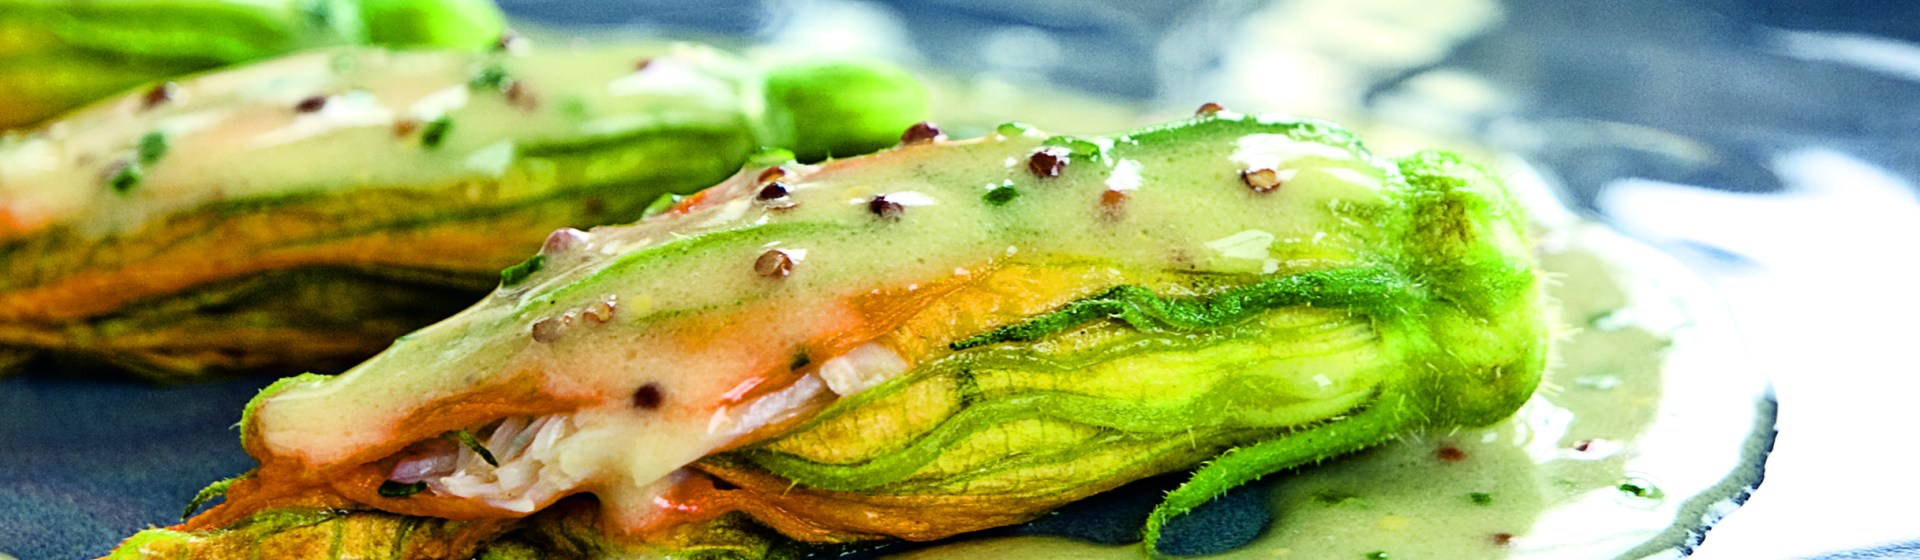 Crab-Stuffed Zucchini Flowers Recipe - Food Republic